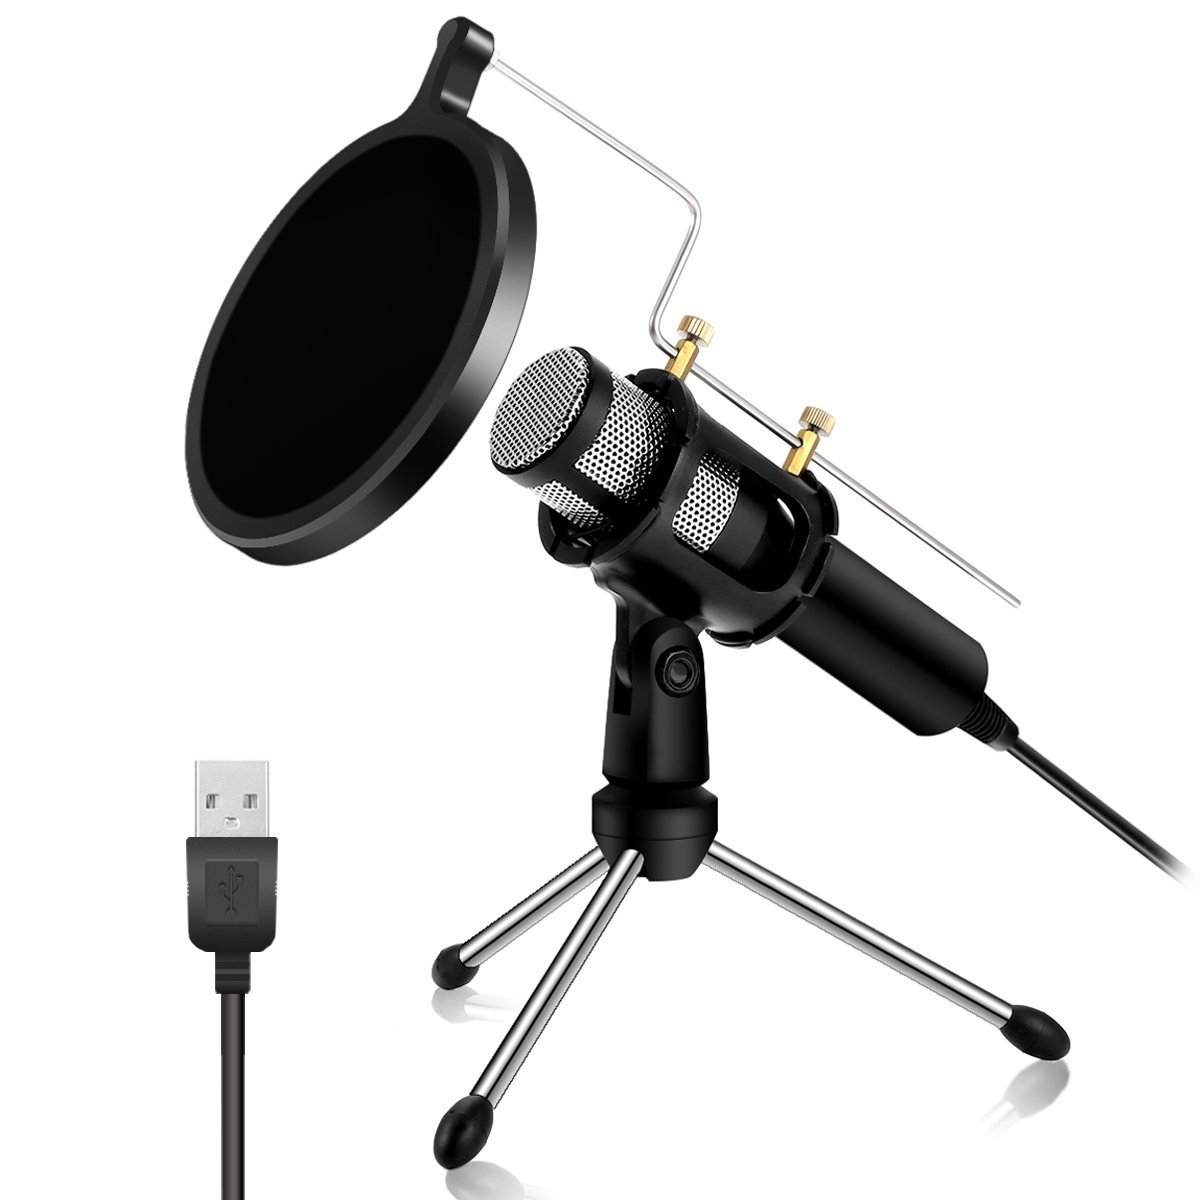 Condenser Microphone NASUM Portable Mini Recording Microphone with 3.5mm Plug &Play Home Studio Microphones for Online Chatting,Cellphone,Tablets,Laptops,YouTube,PC NASUMiuwyexgpz68